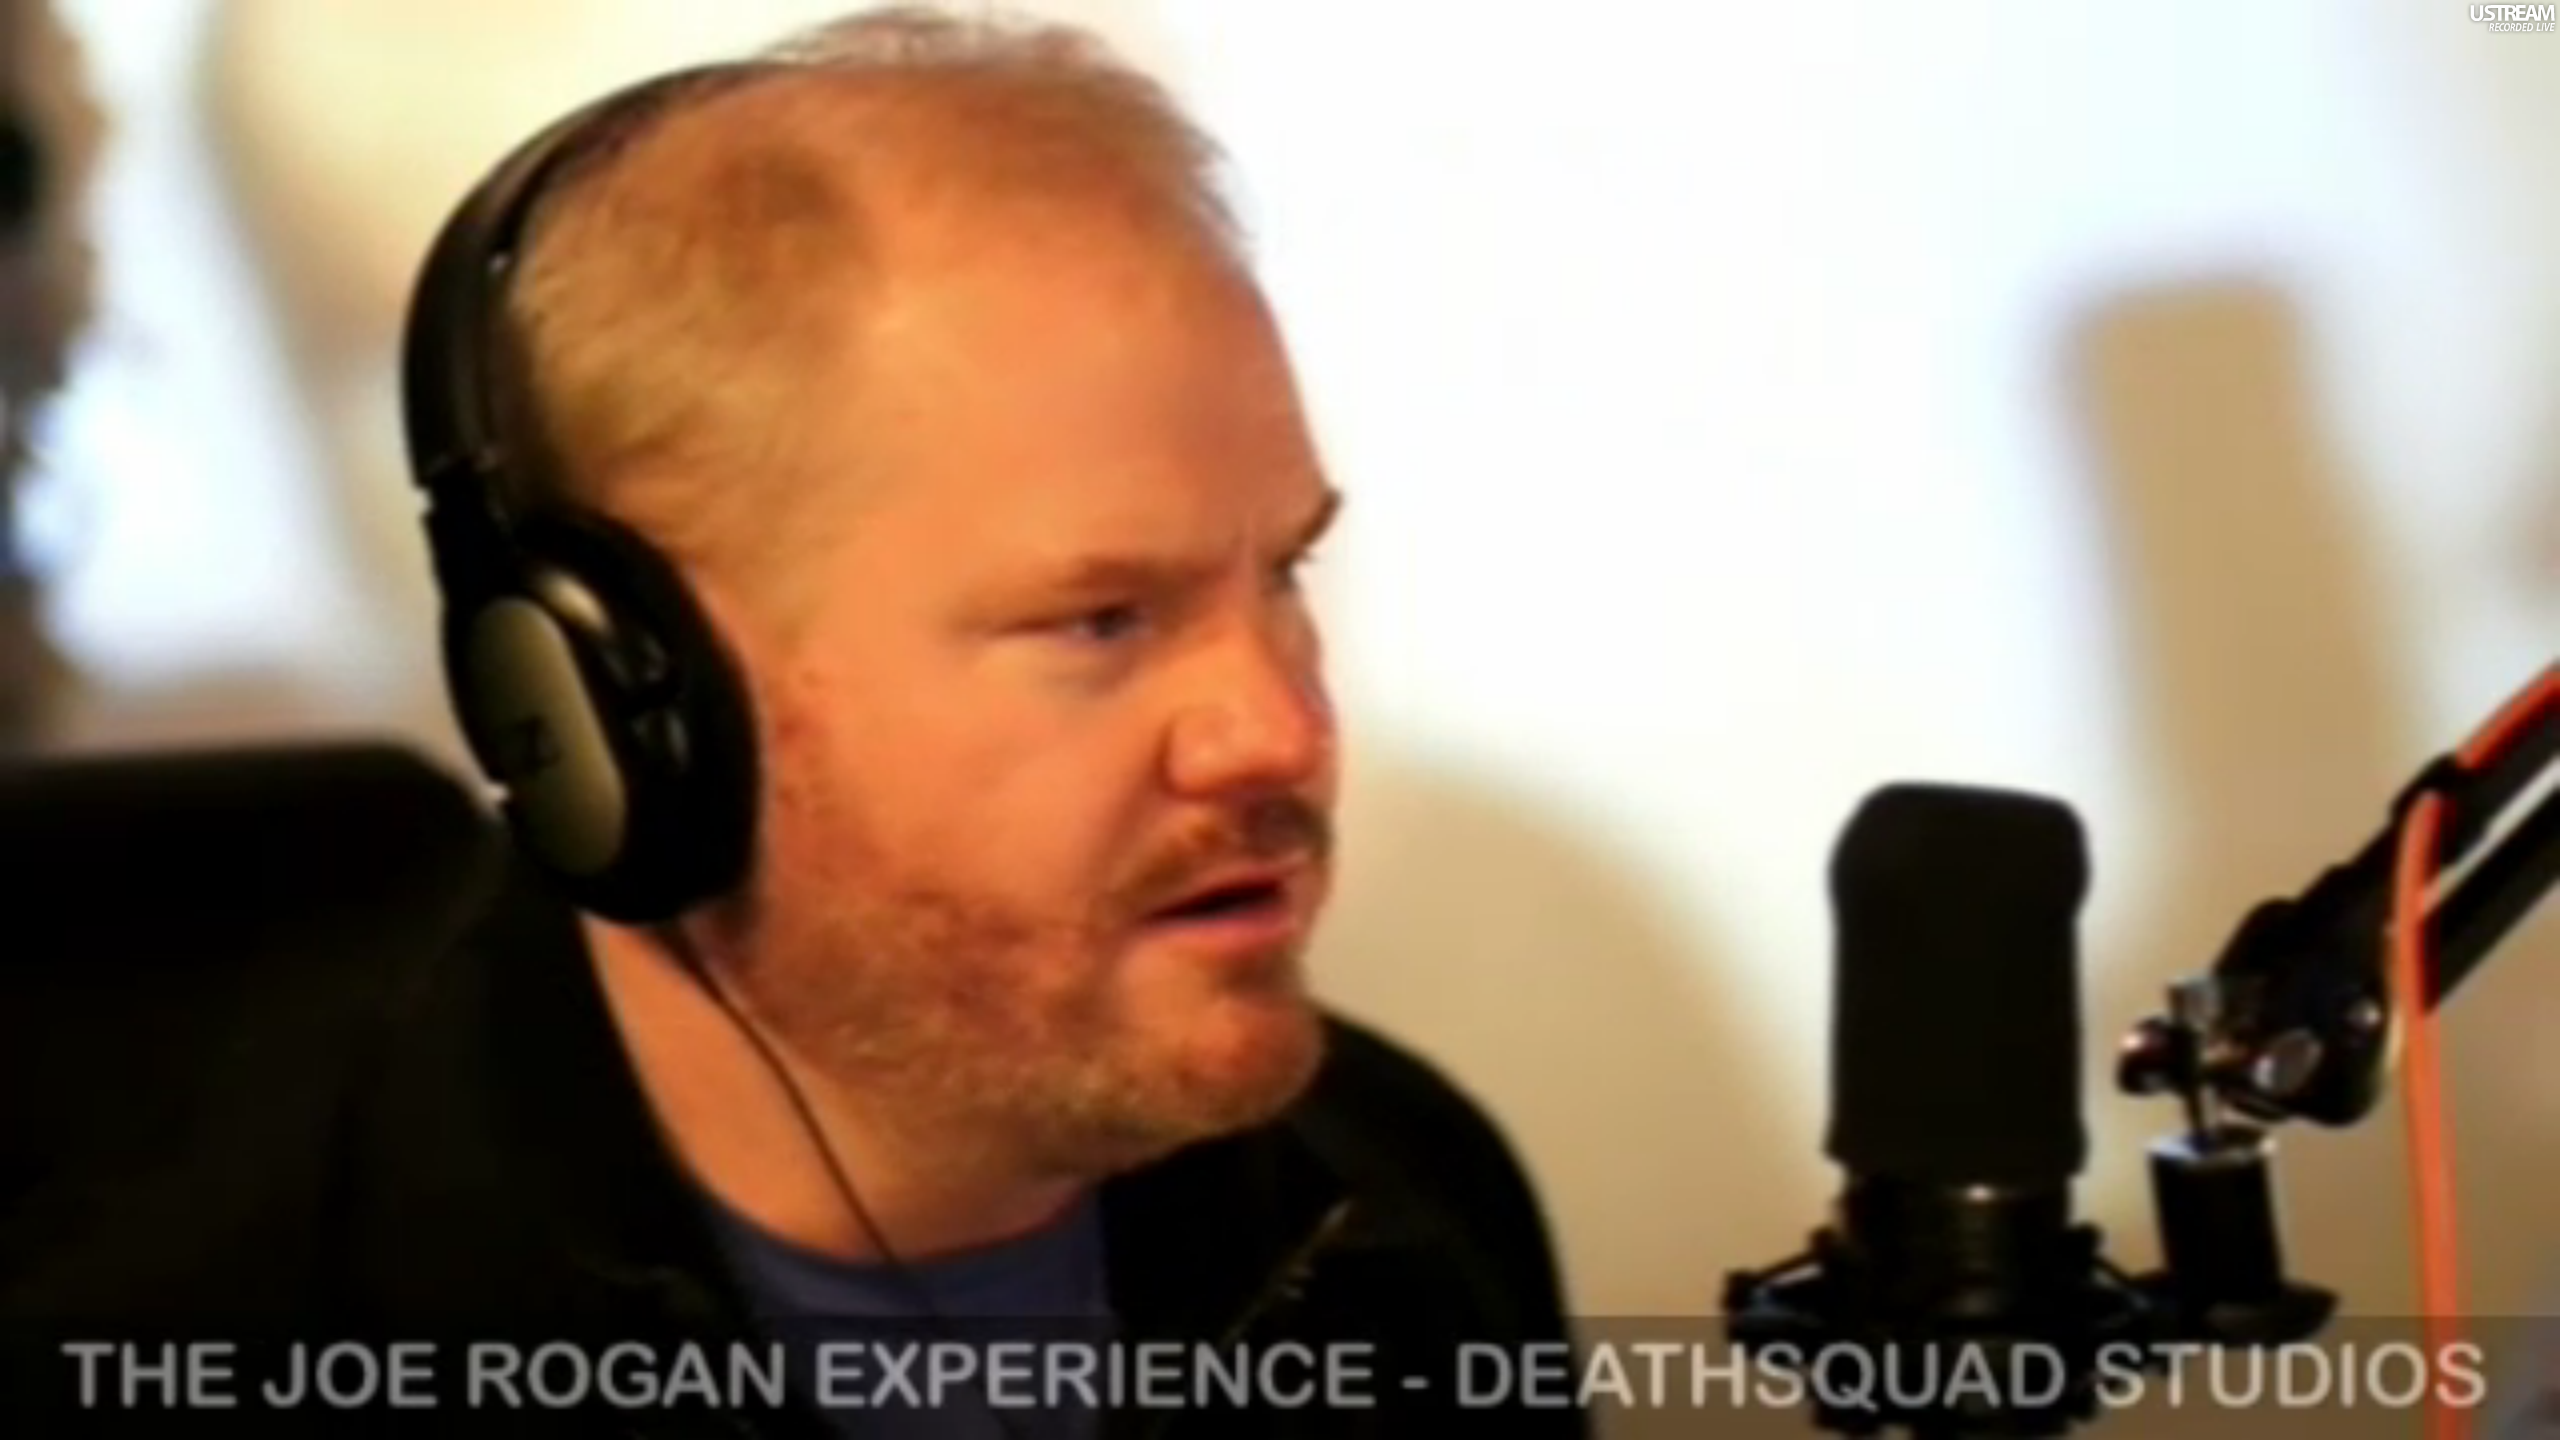 The Joe Rogan Experience #193 - Jim Gaffigan, Brian Redban